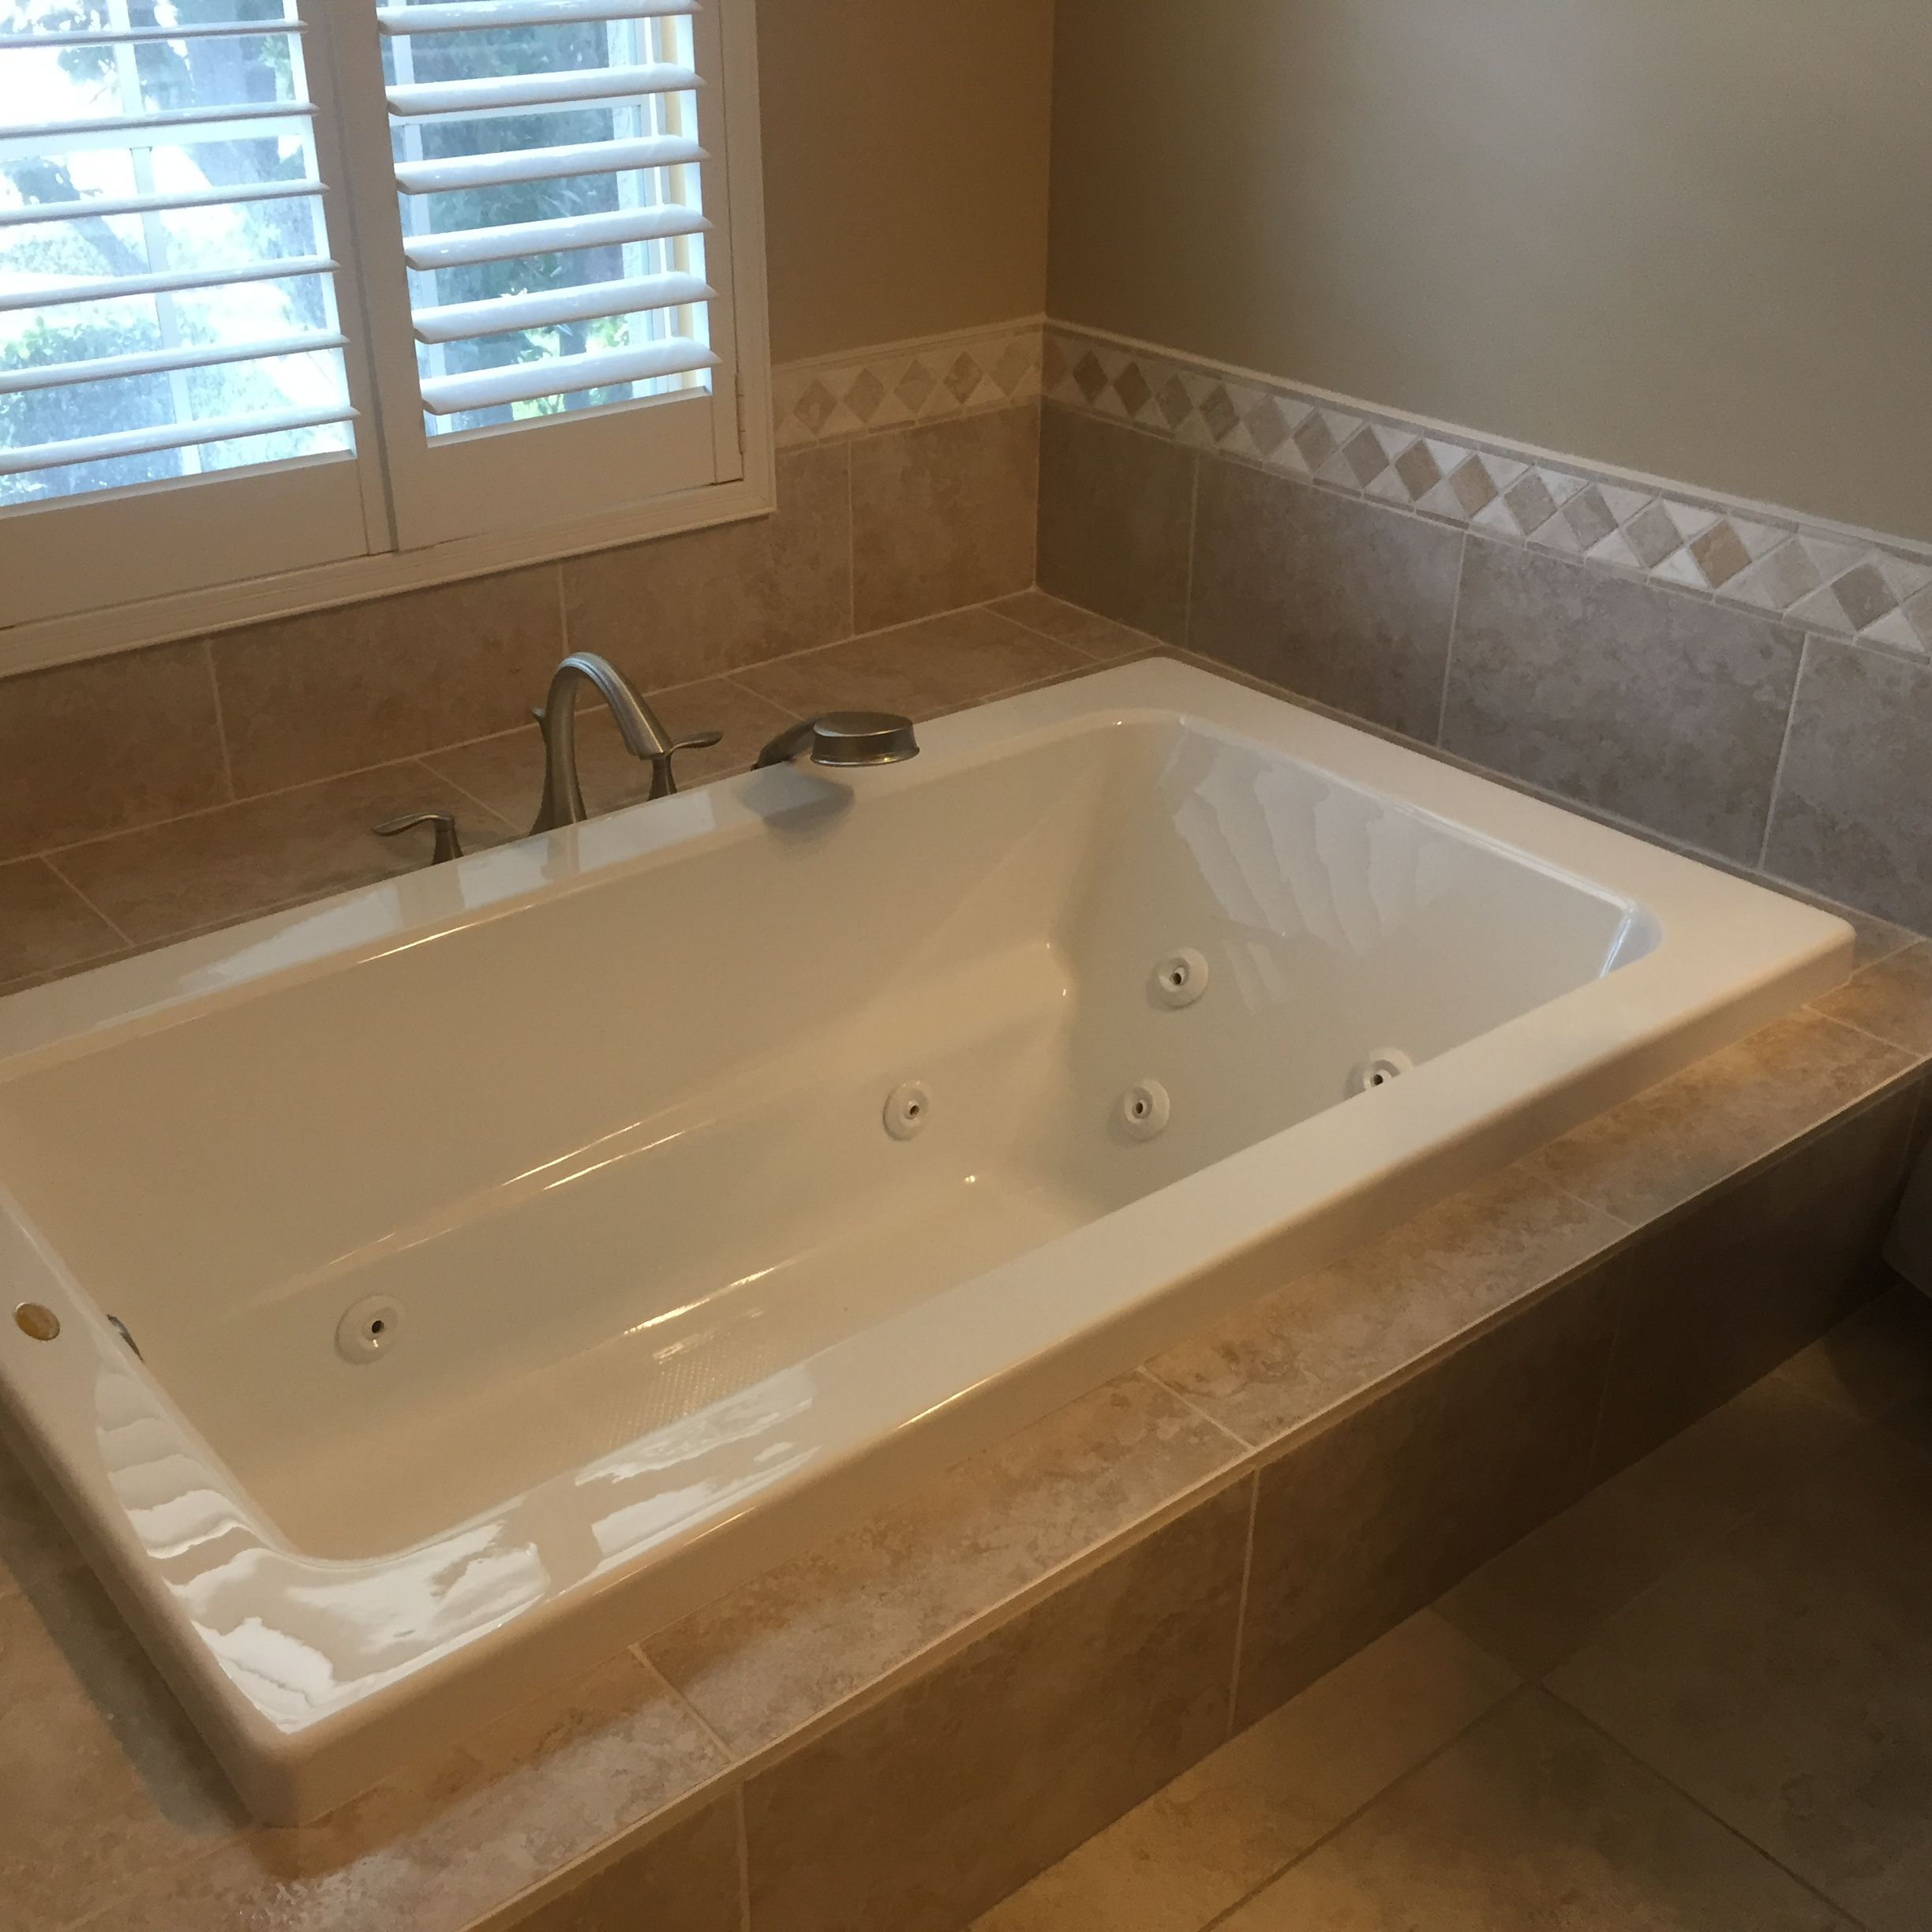 Drop-in jetted tub w/ MOEN Eva Roman tub spout & sprayer | Bathroom ...